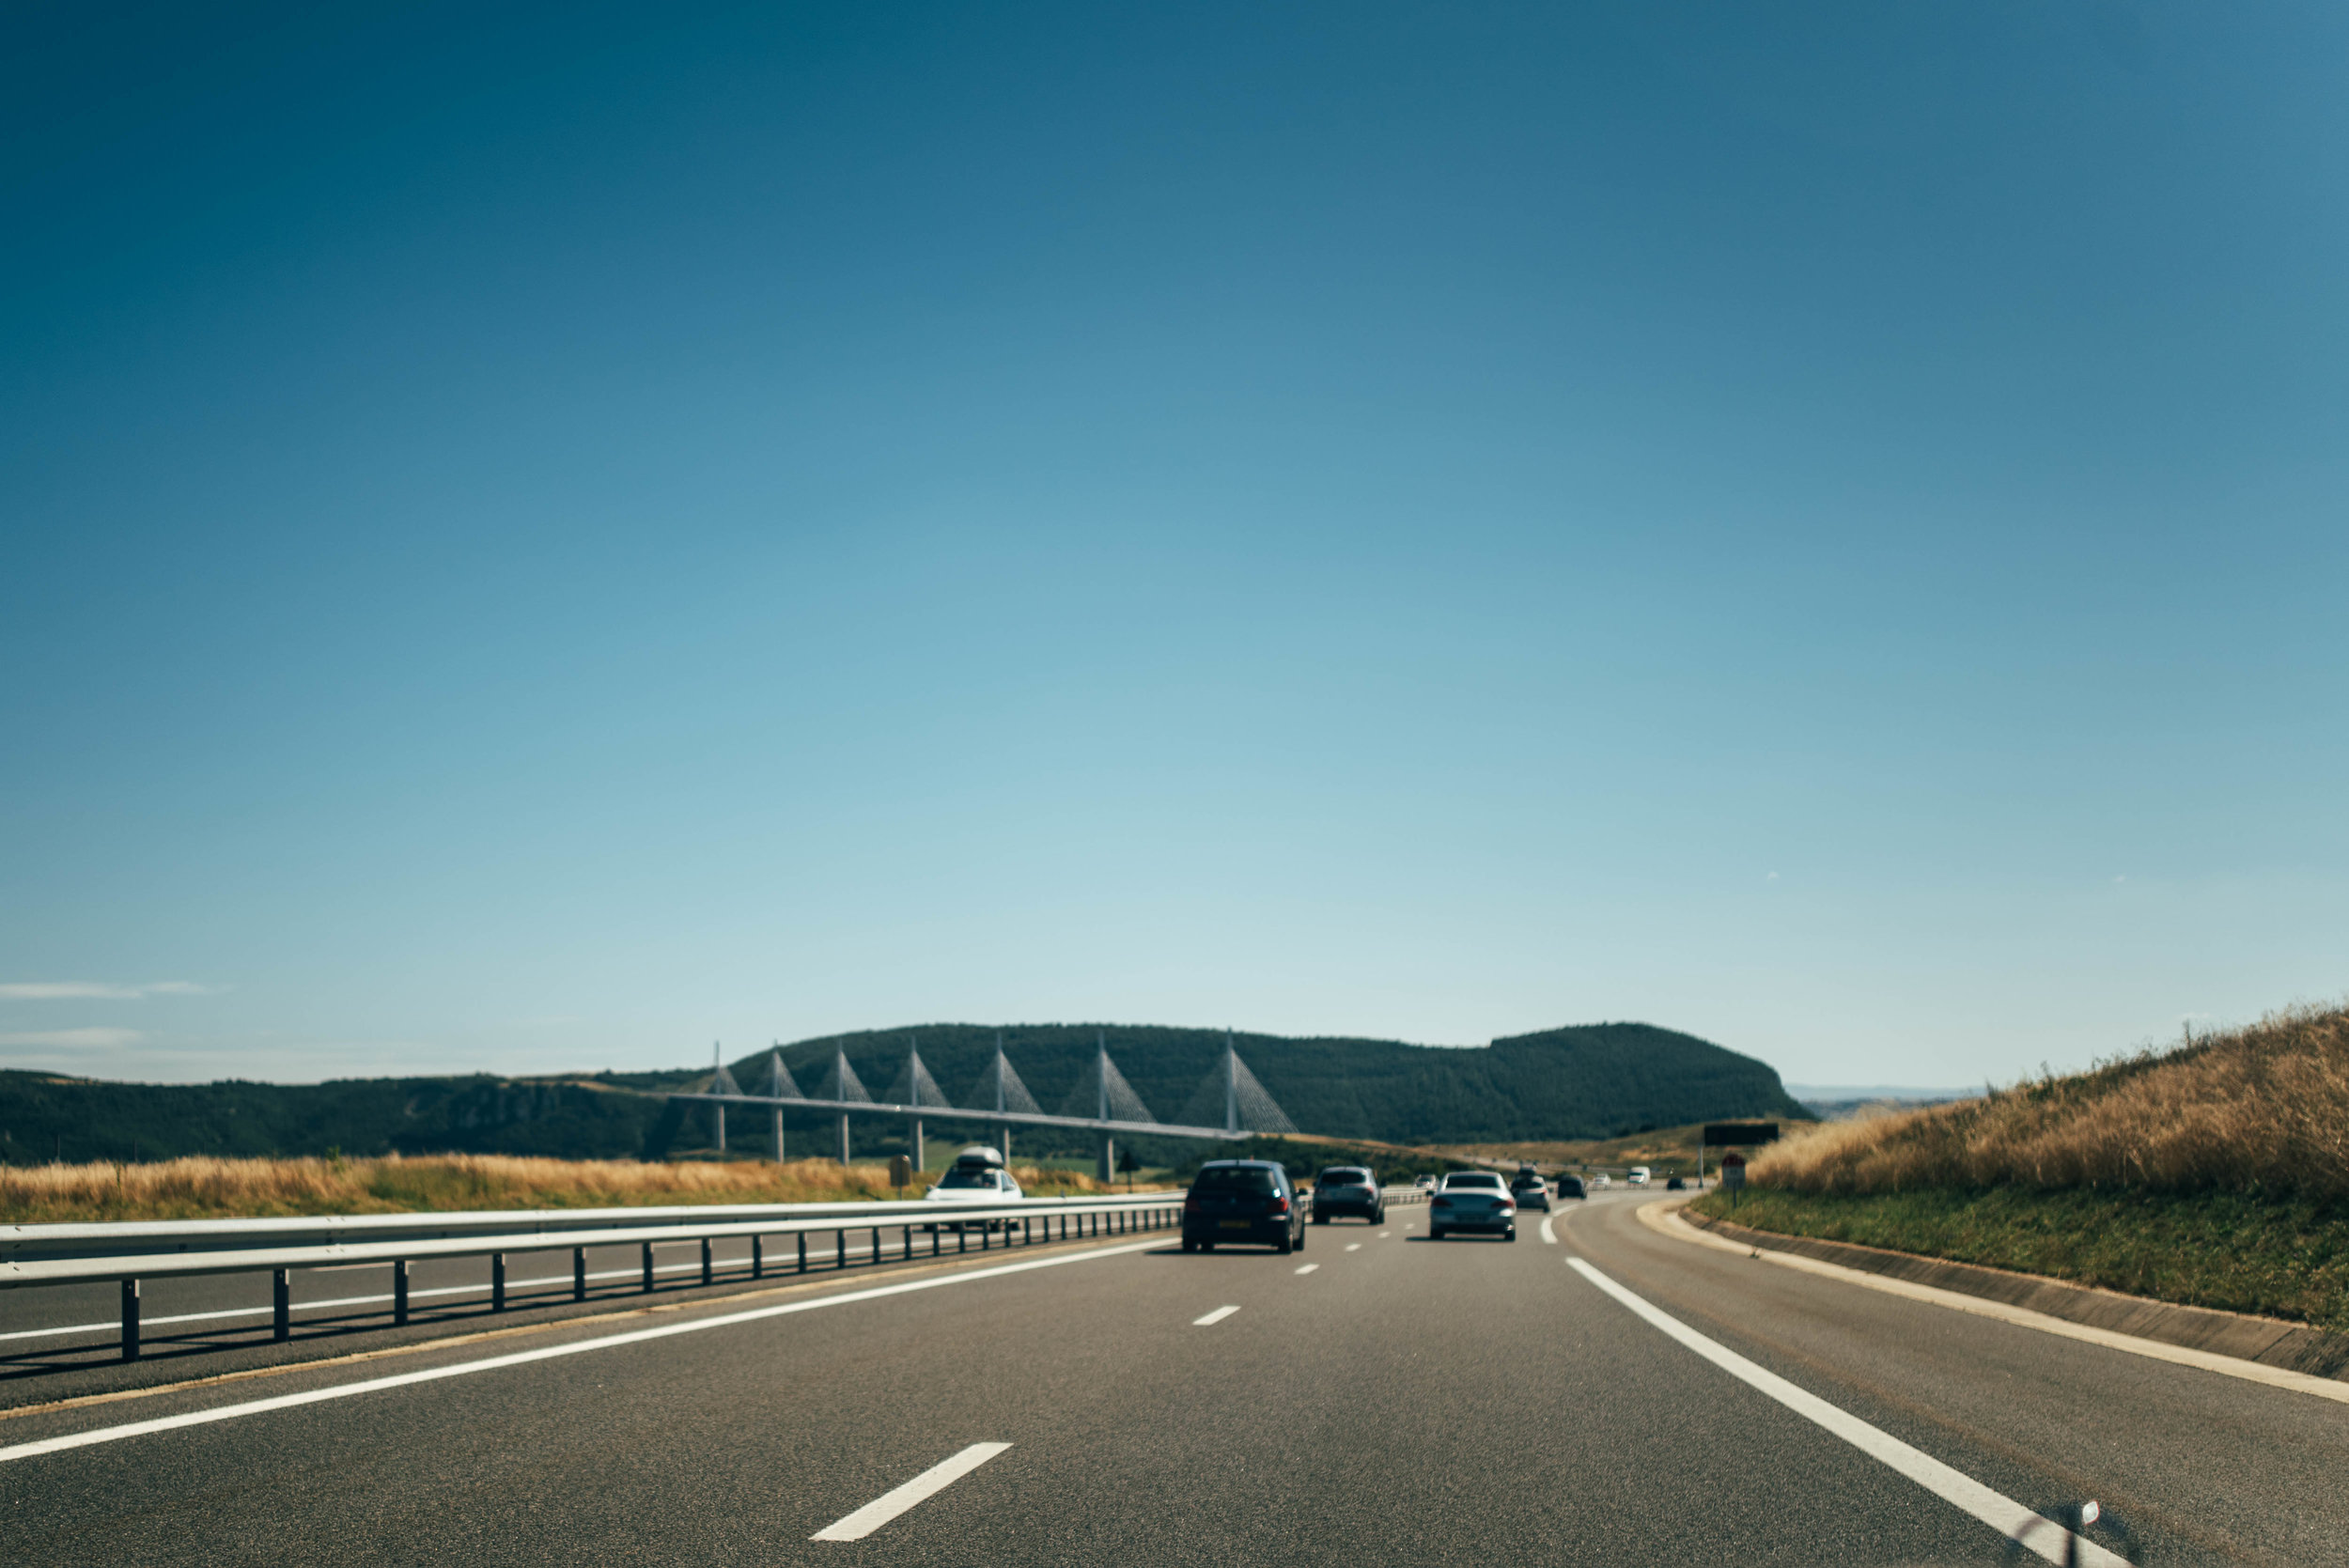 The Millau Viaduct Southern France Essex UK Documentary Photographer